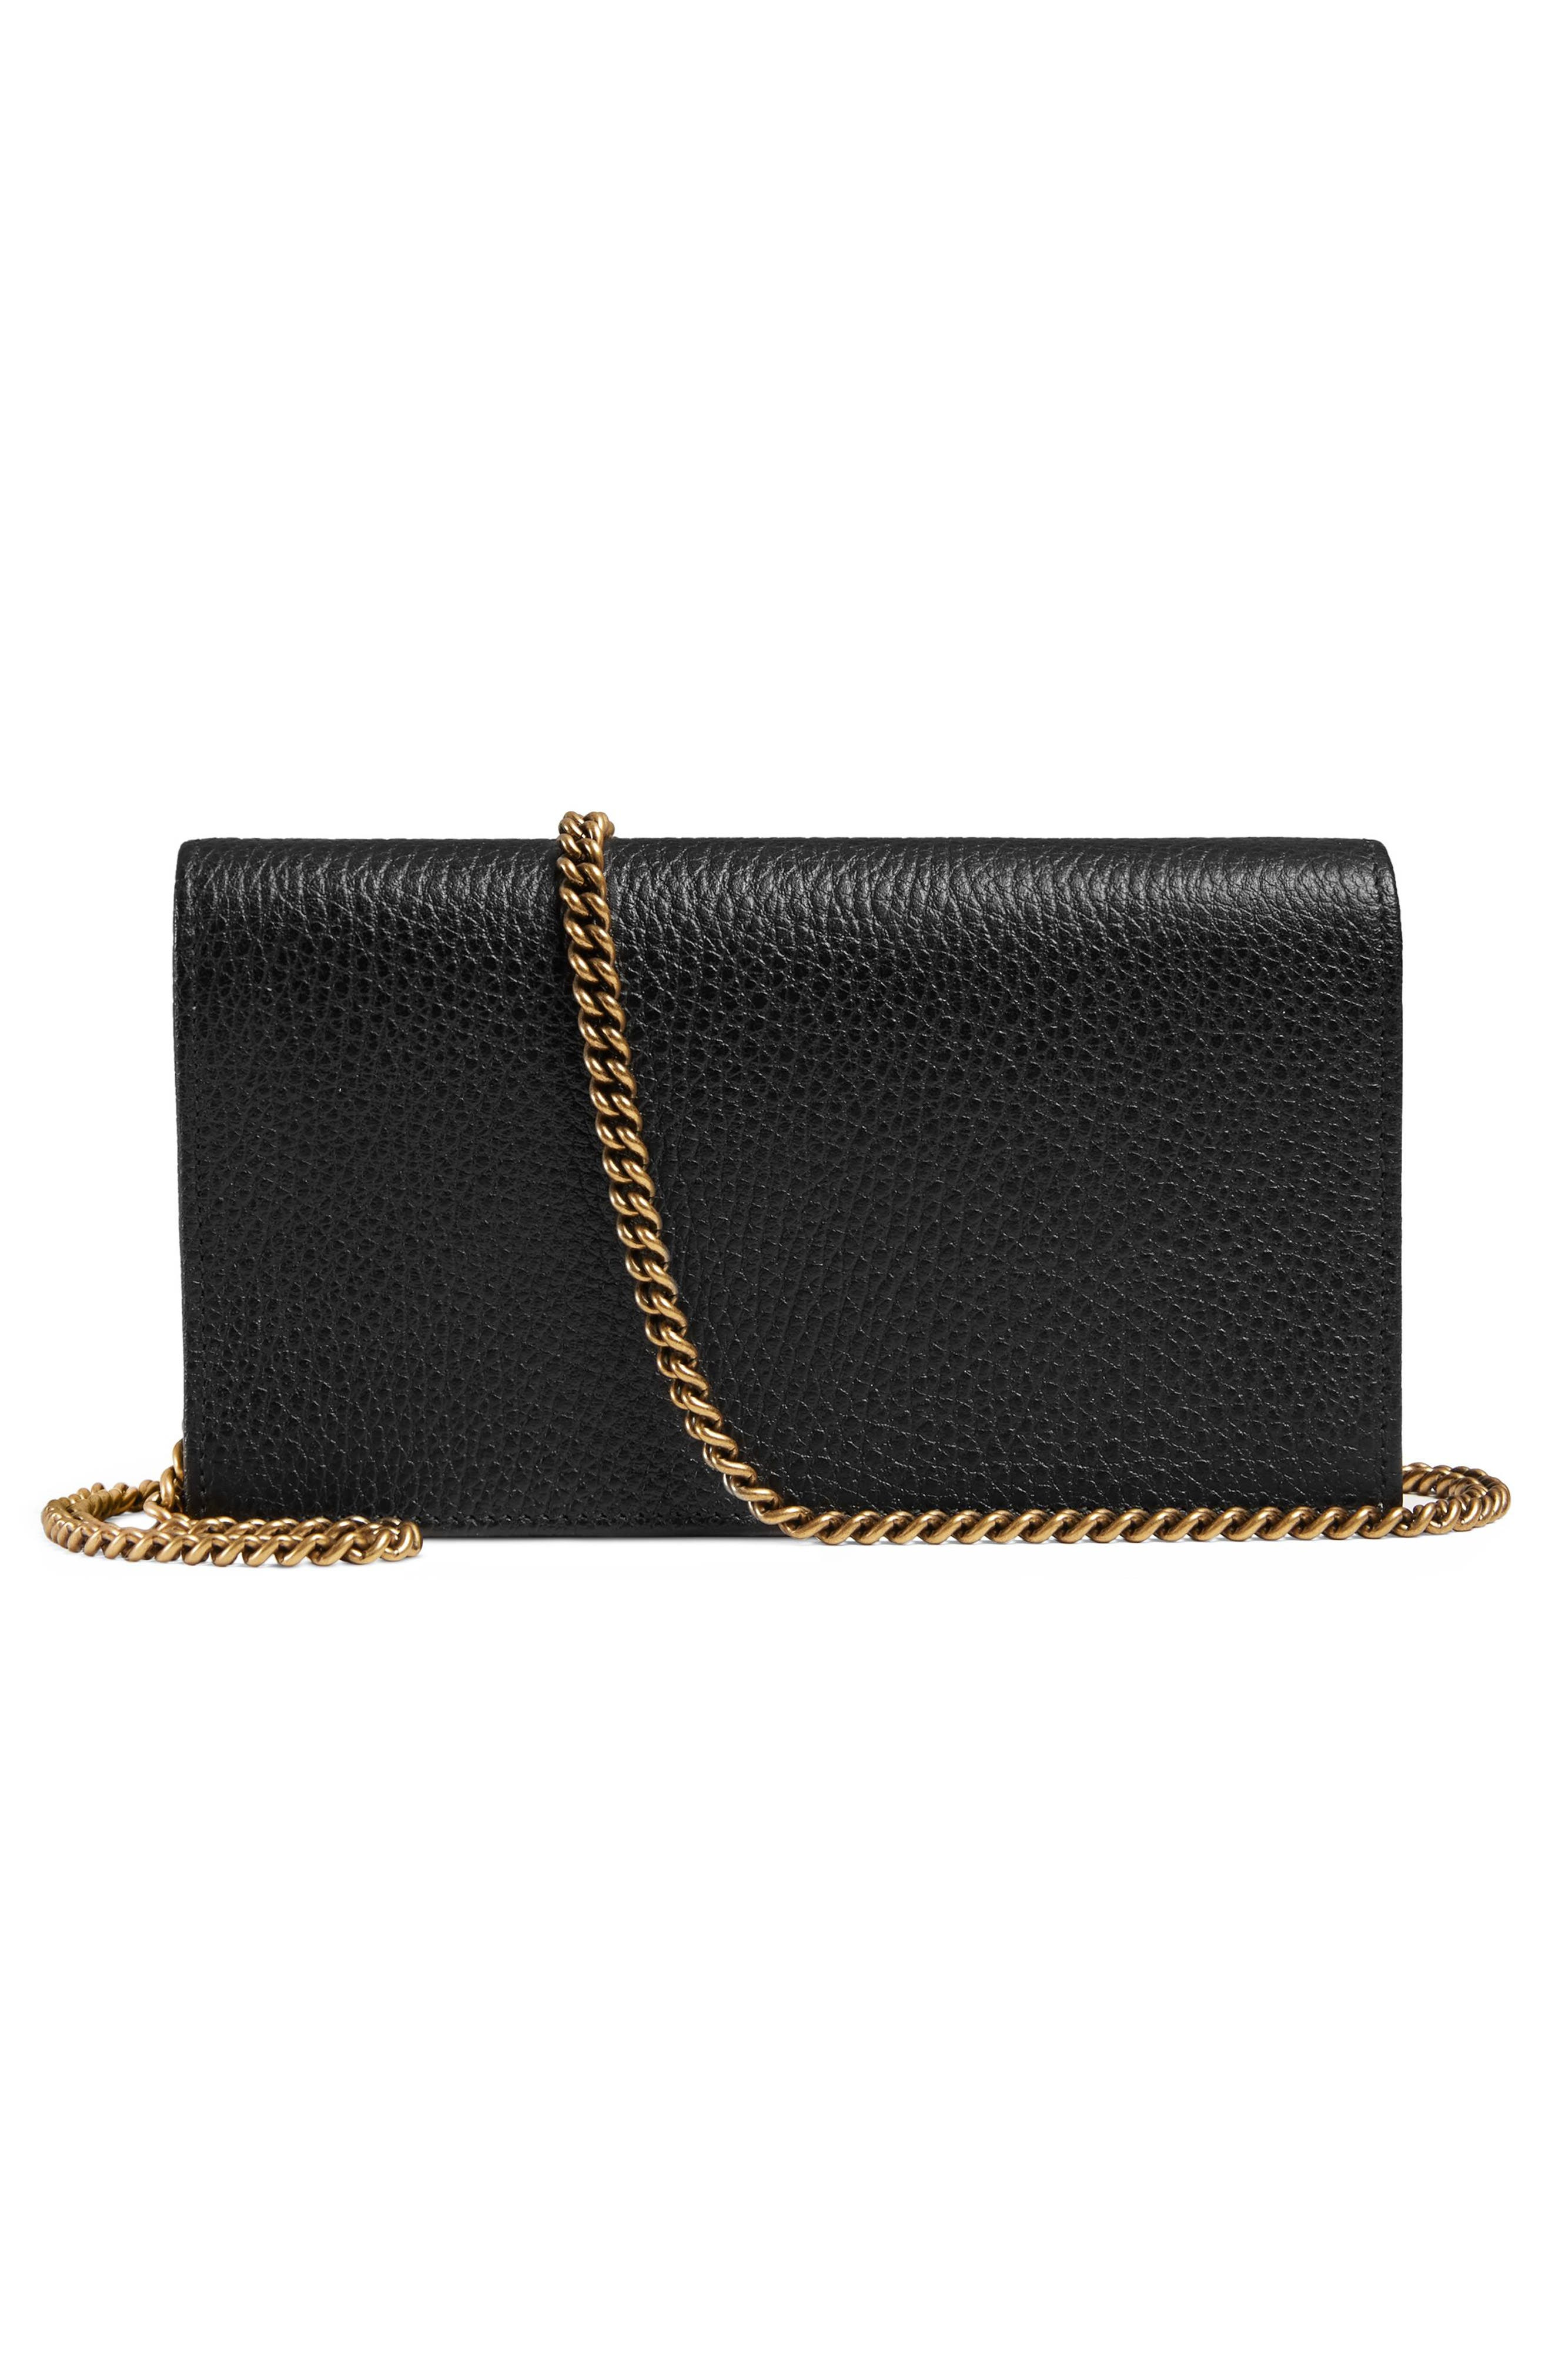 Fiocchino Leather Wallet on a Chain,                             Alternate thumbnail 3, color,                             001